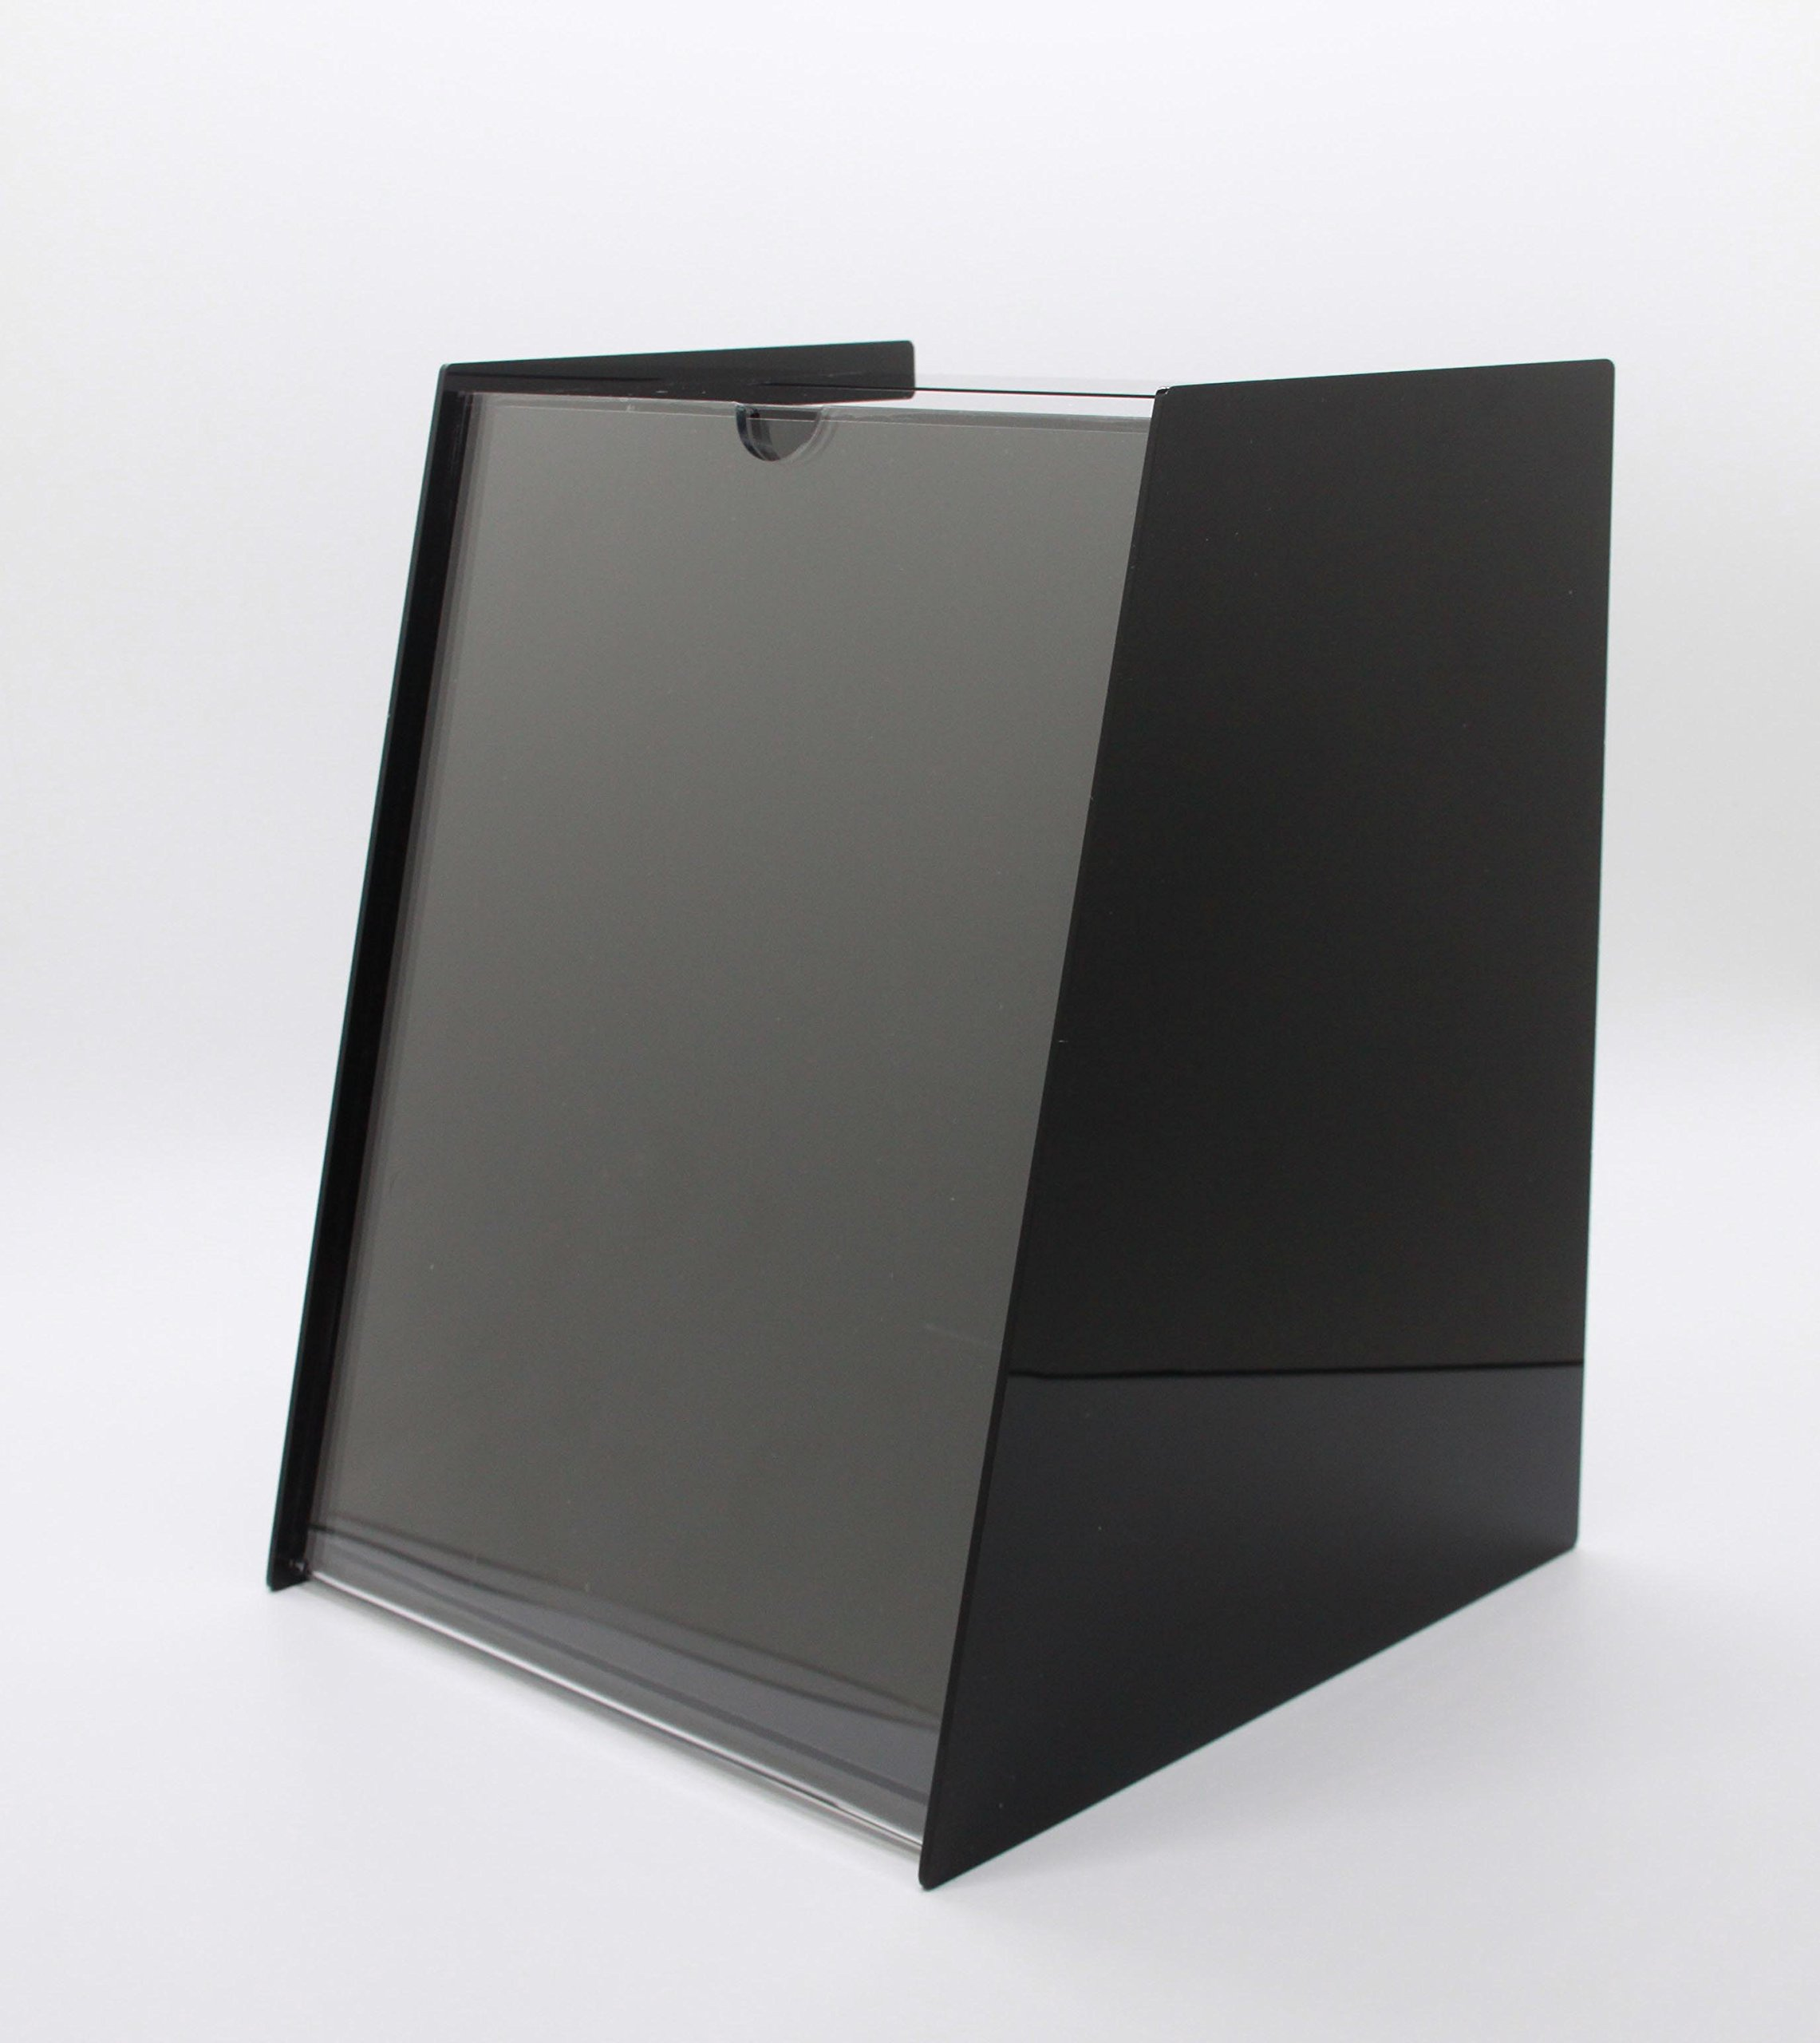 Fixture Display 8.8''x11.0''x9.0'' Acrylic Ballot Box with 8.5 x 11 Sign Holder Pen-Black 19228 by FixtureDisplays